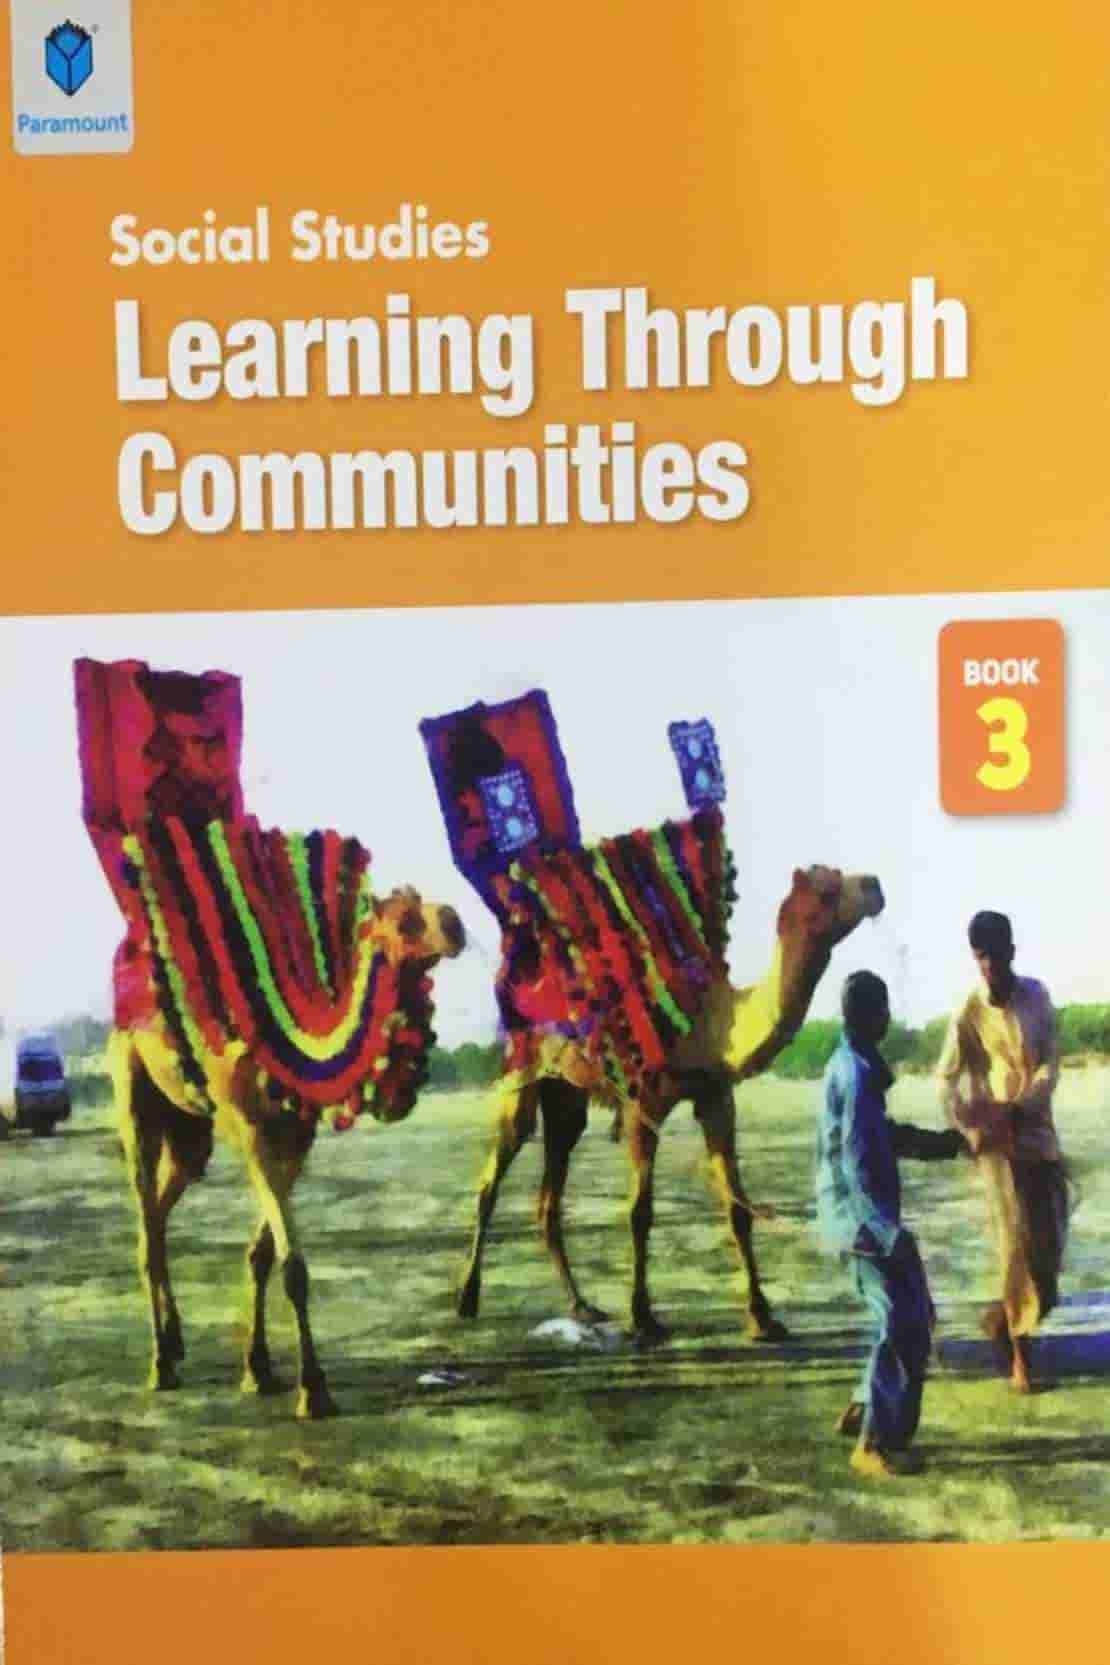 LEARNING THROUGH COMMUNITIES STUDENT BOOK 3